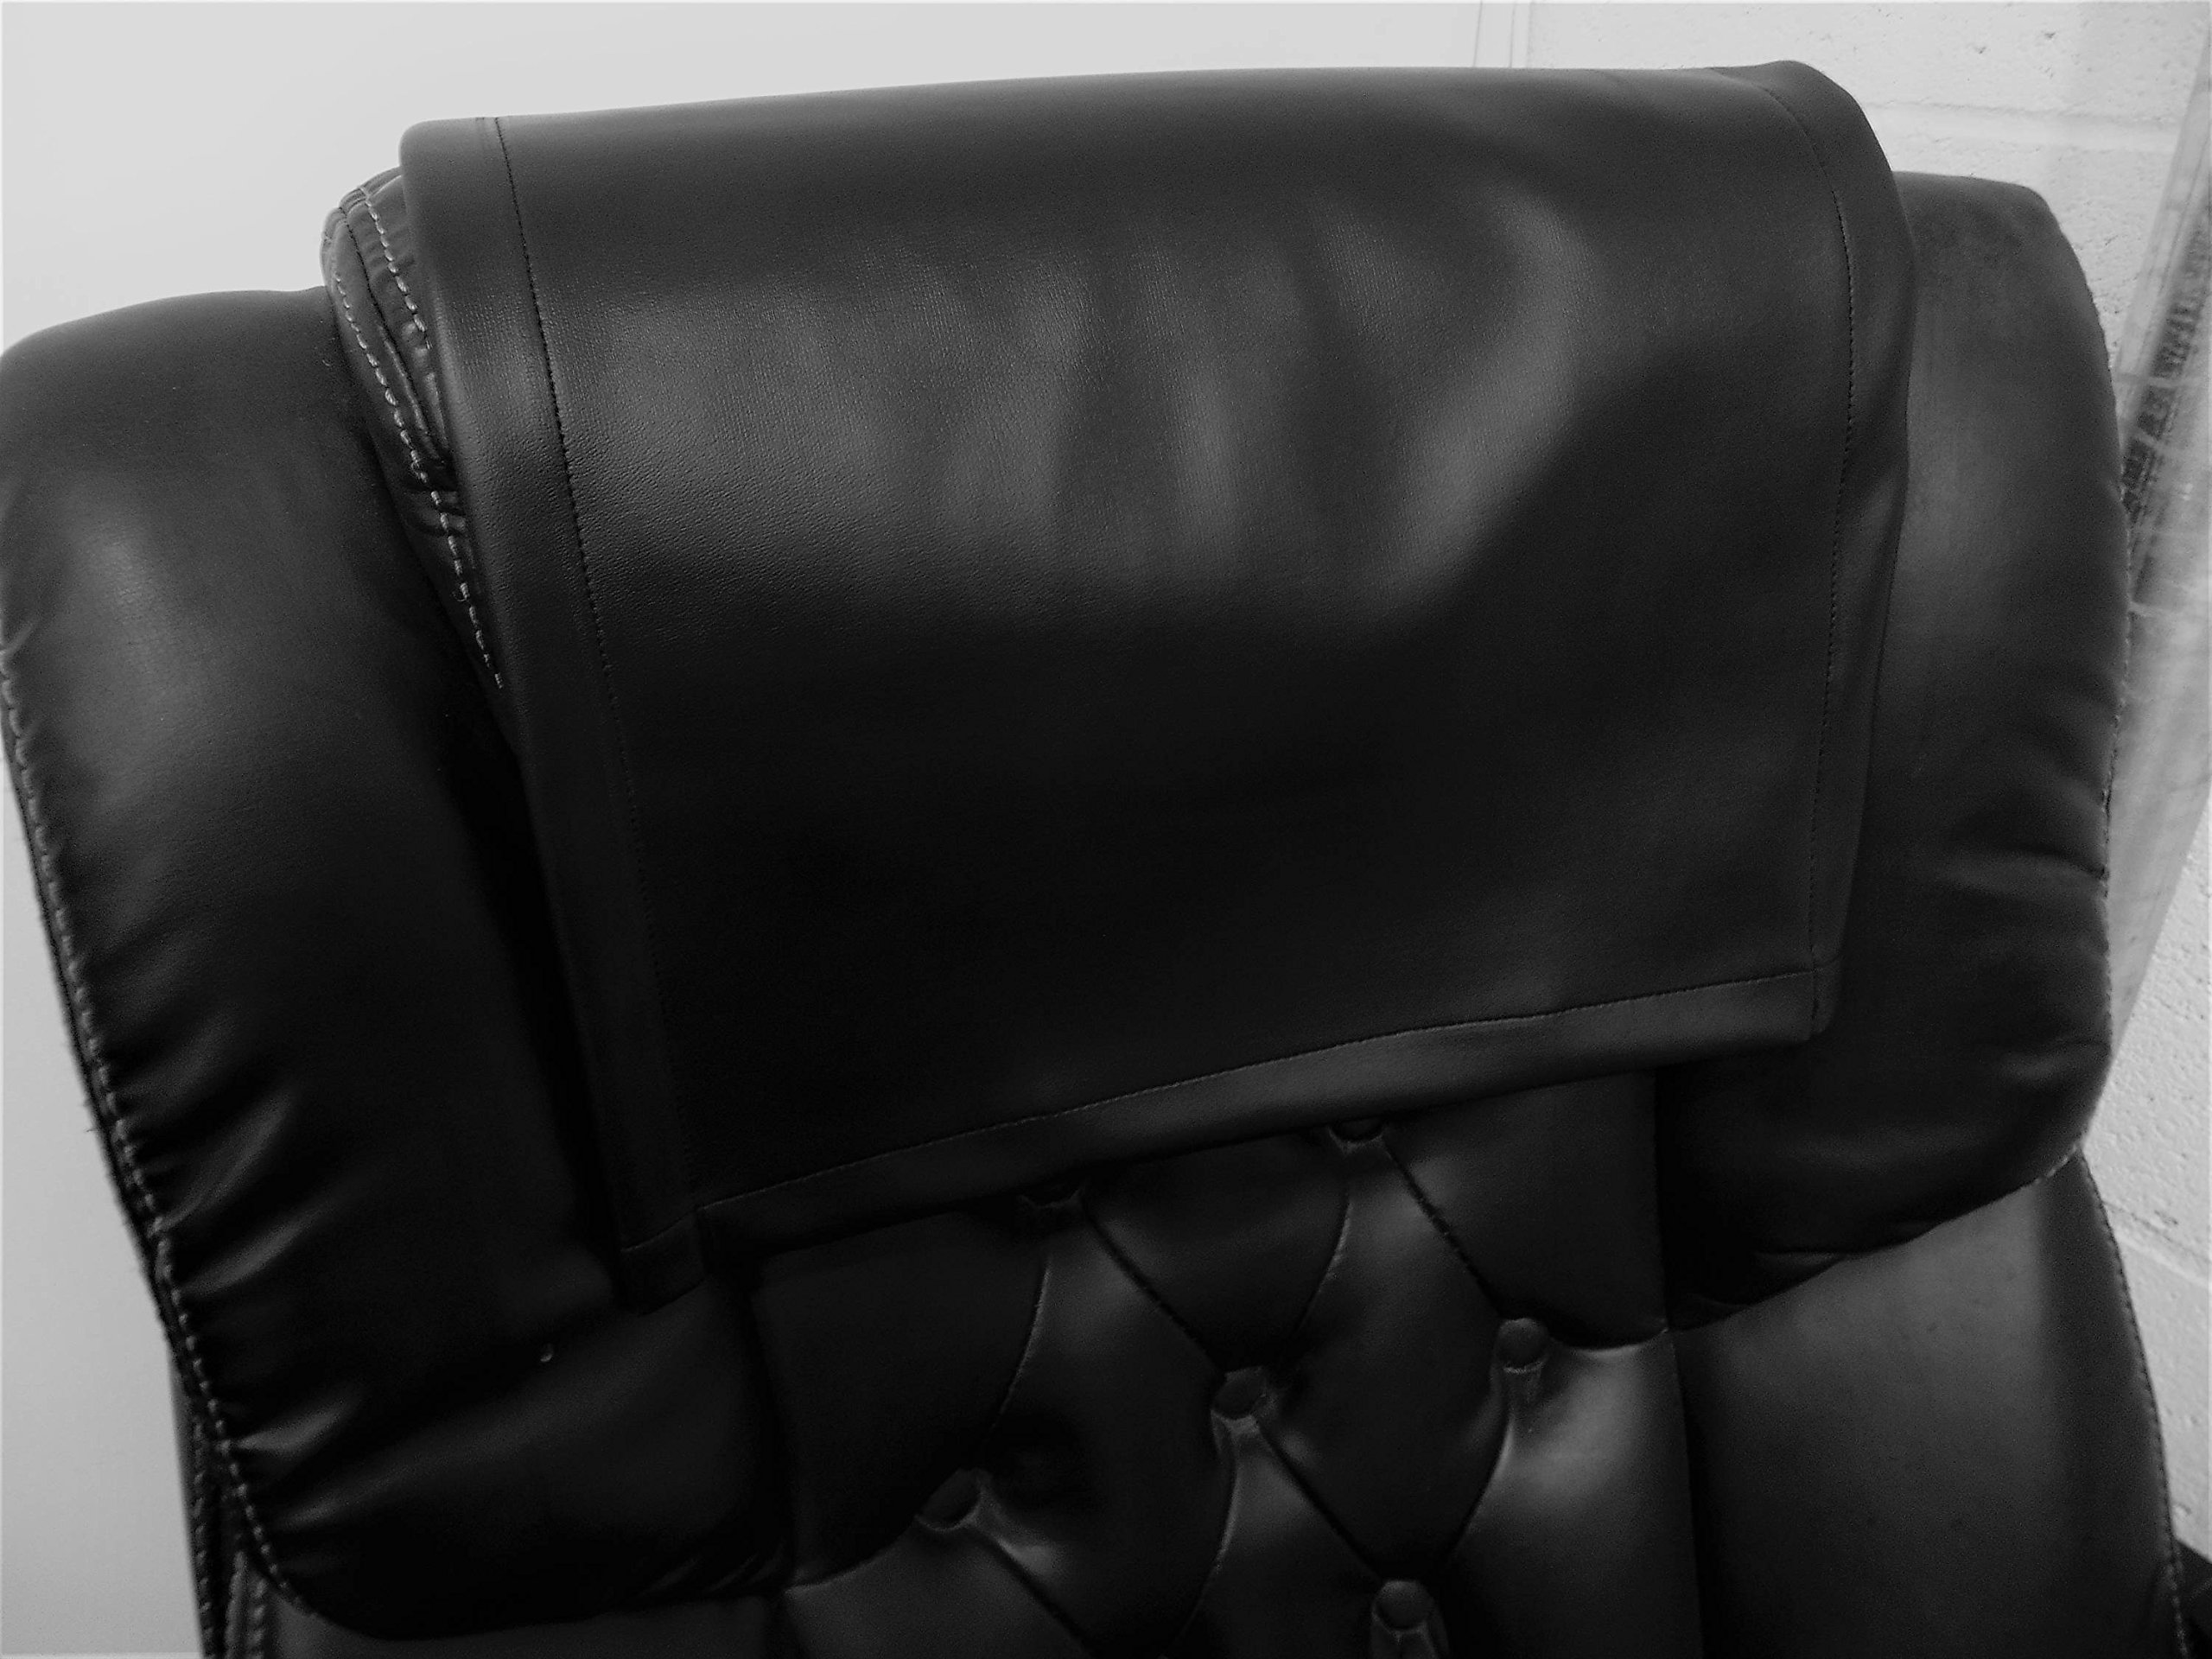 Vinyl, faux leather PVC Black ,15x15 Sofa Loveseat Chaise Theater Seat, RV Cover, Chair Caps Headrest Pad, Recliner Head Cover, Furniture Protector